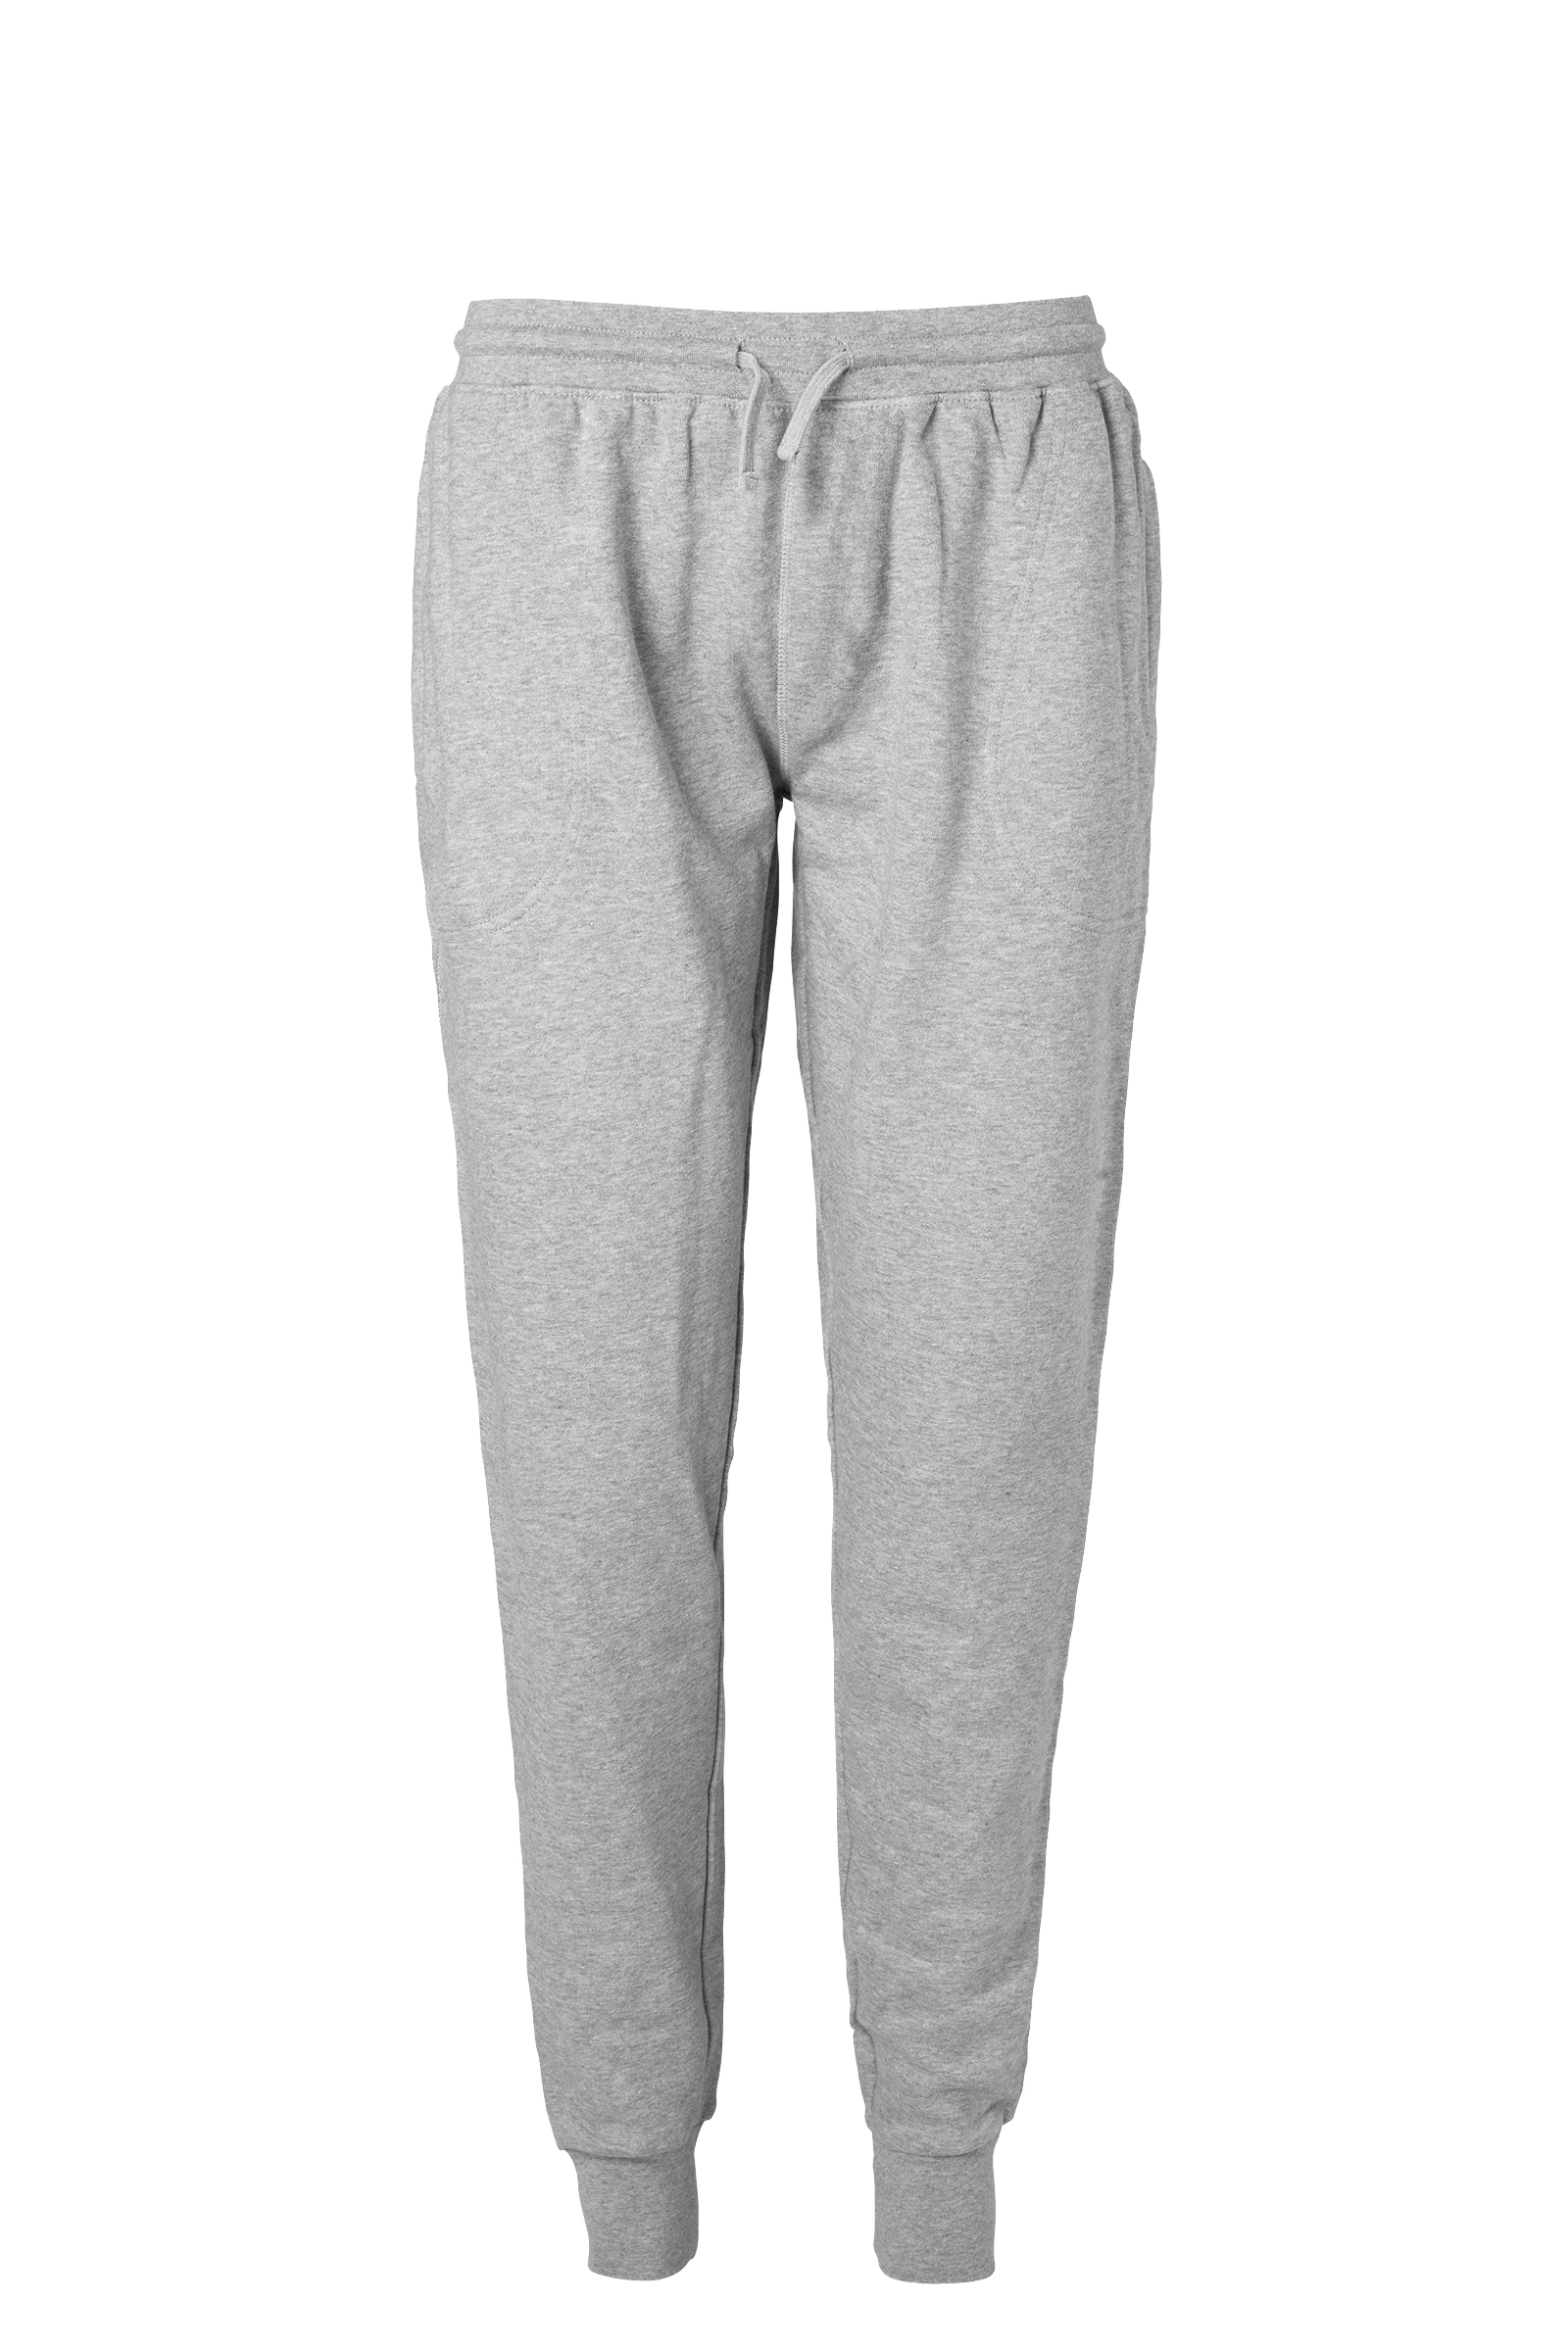 Neutral range - UoC Joggers - Heather Grey - S